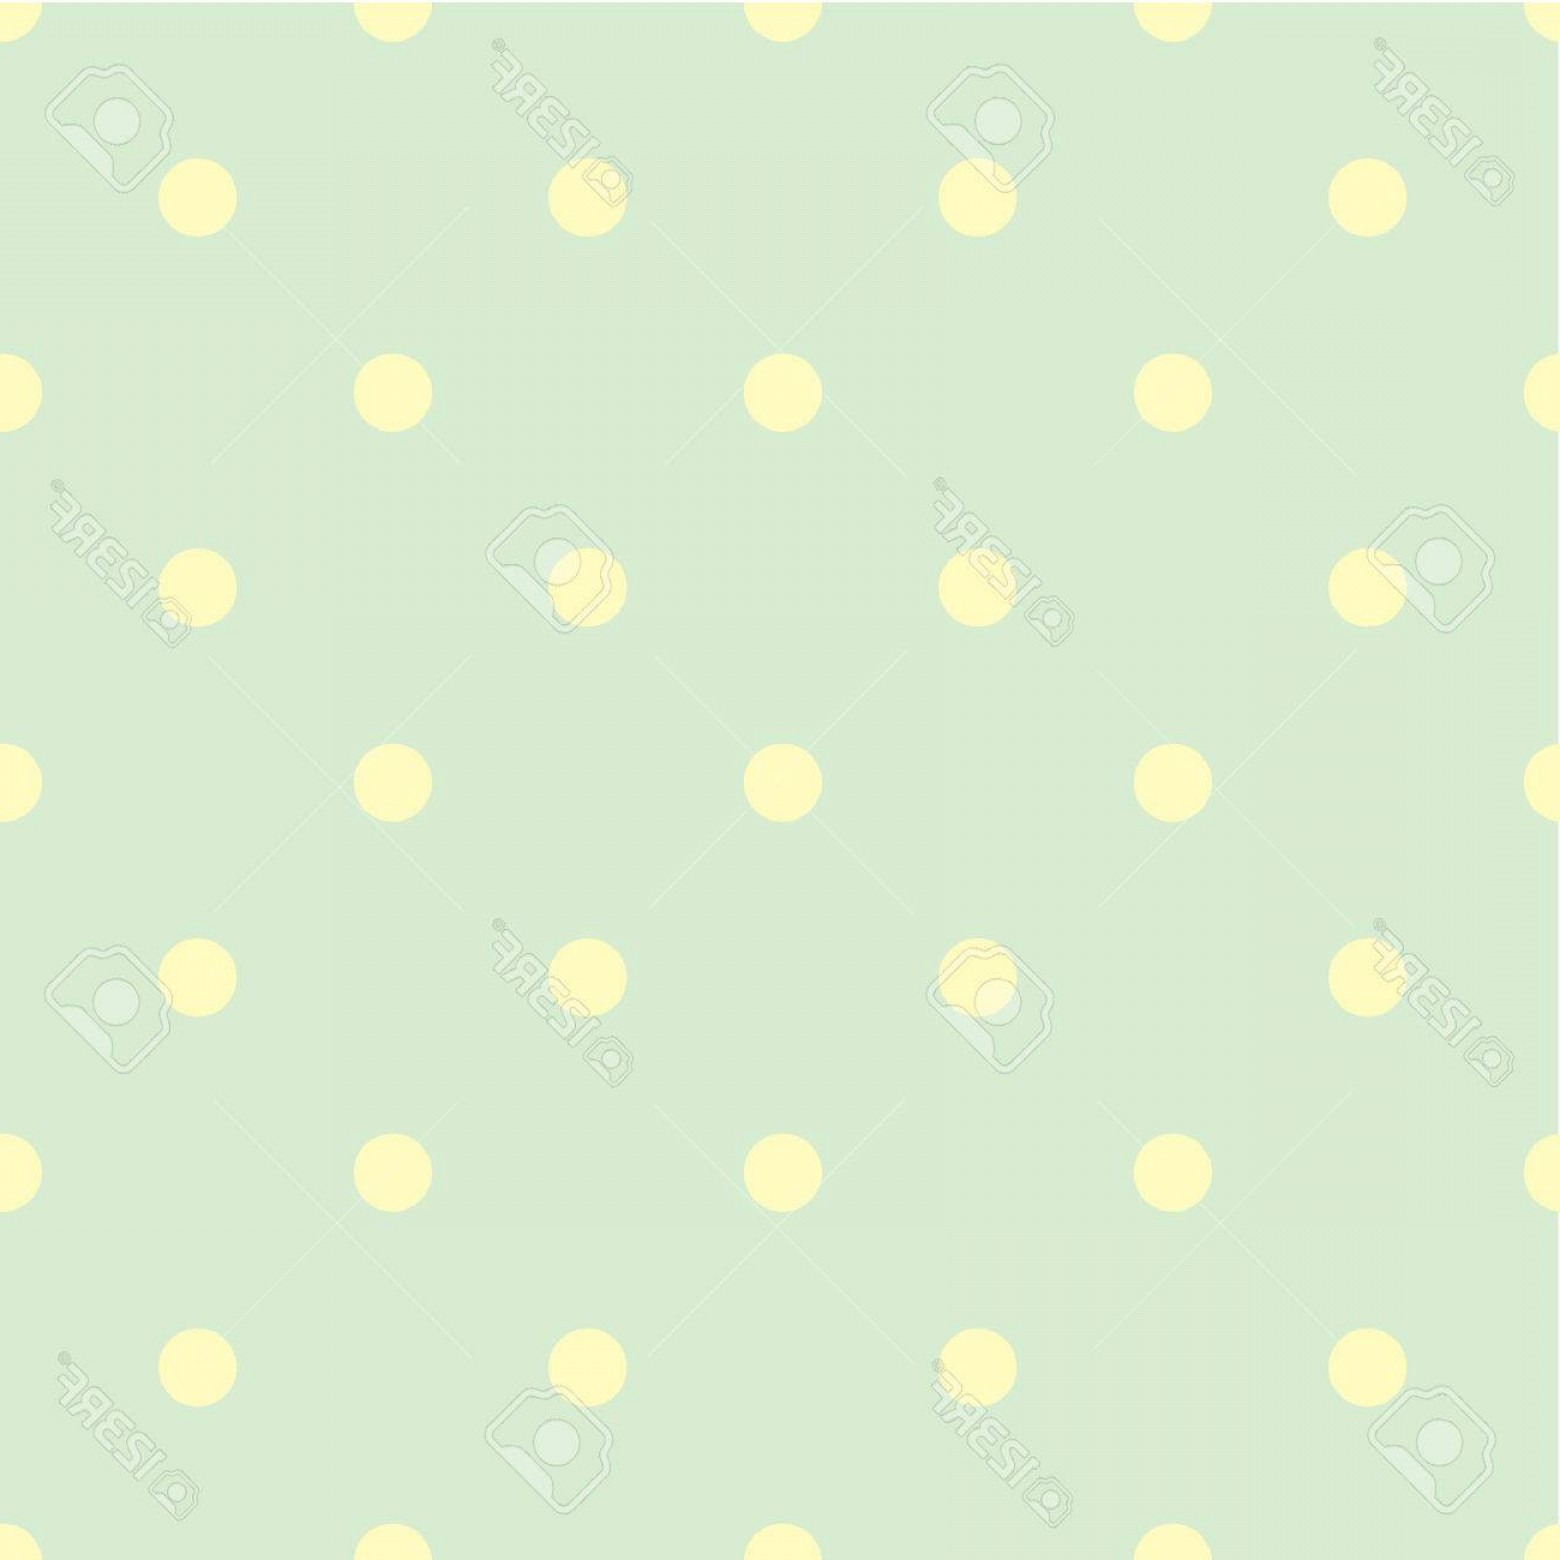 Polka Dot Background Vector Y: Photostock Vector Abstract Vector Seamless Polka Dot Background Seamless Pattern Of Circles Ordered Green Background Y